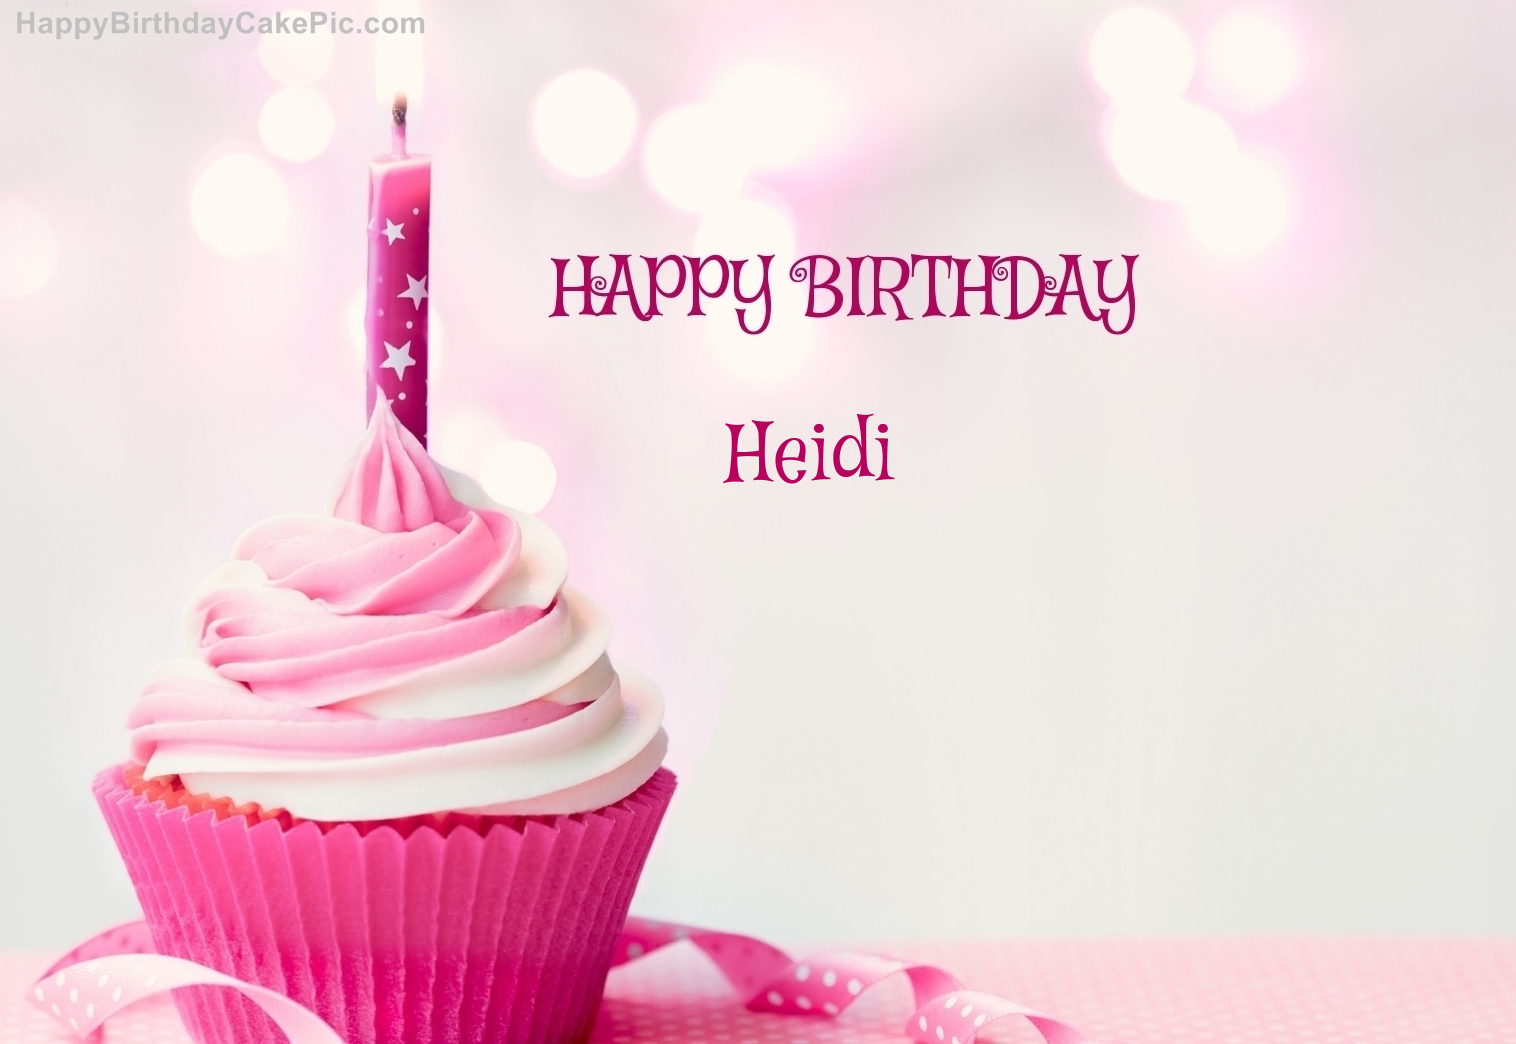 Happy Birthday Cupcake Candle Pink Cake For Heidi